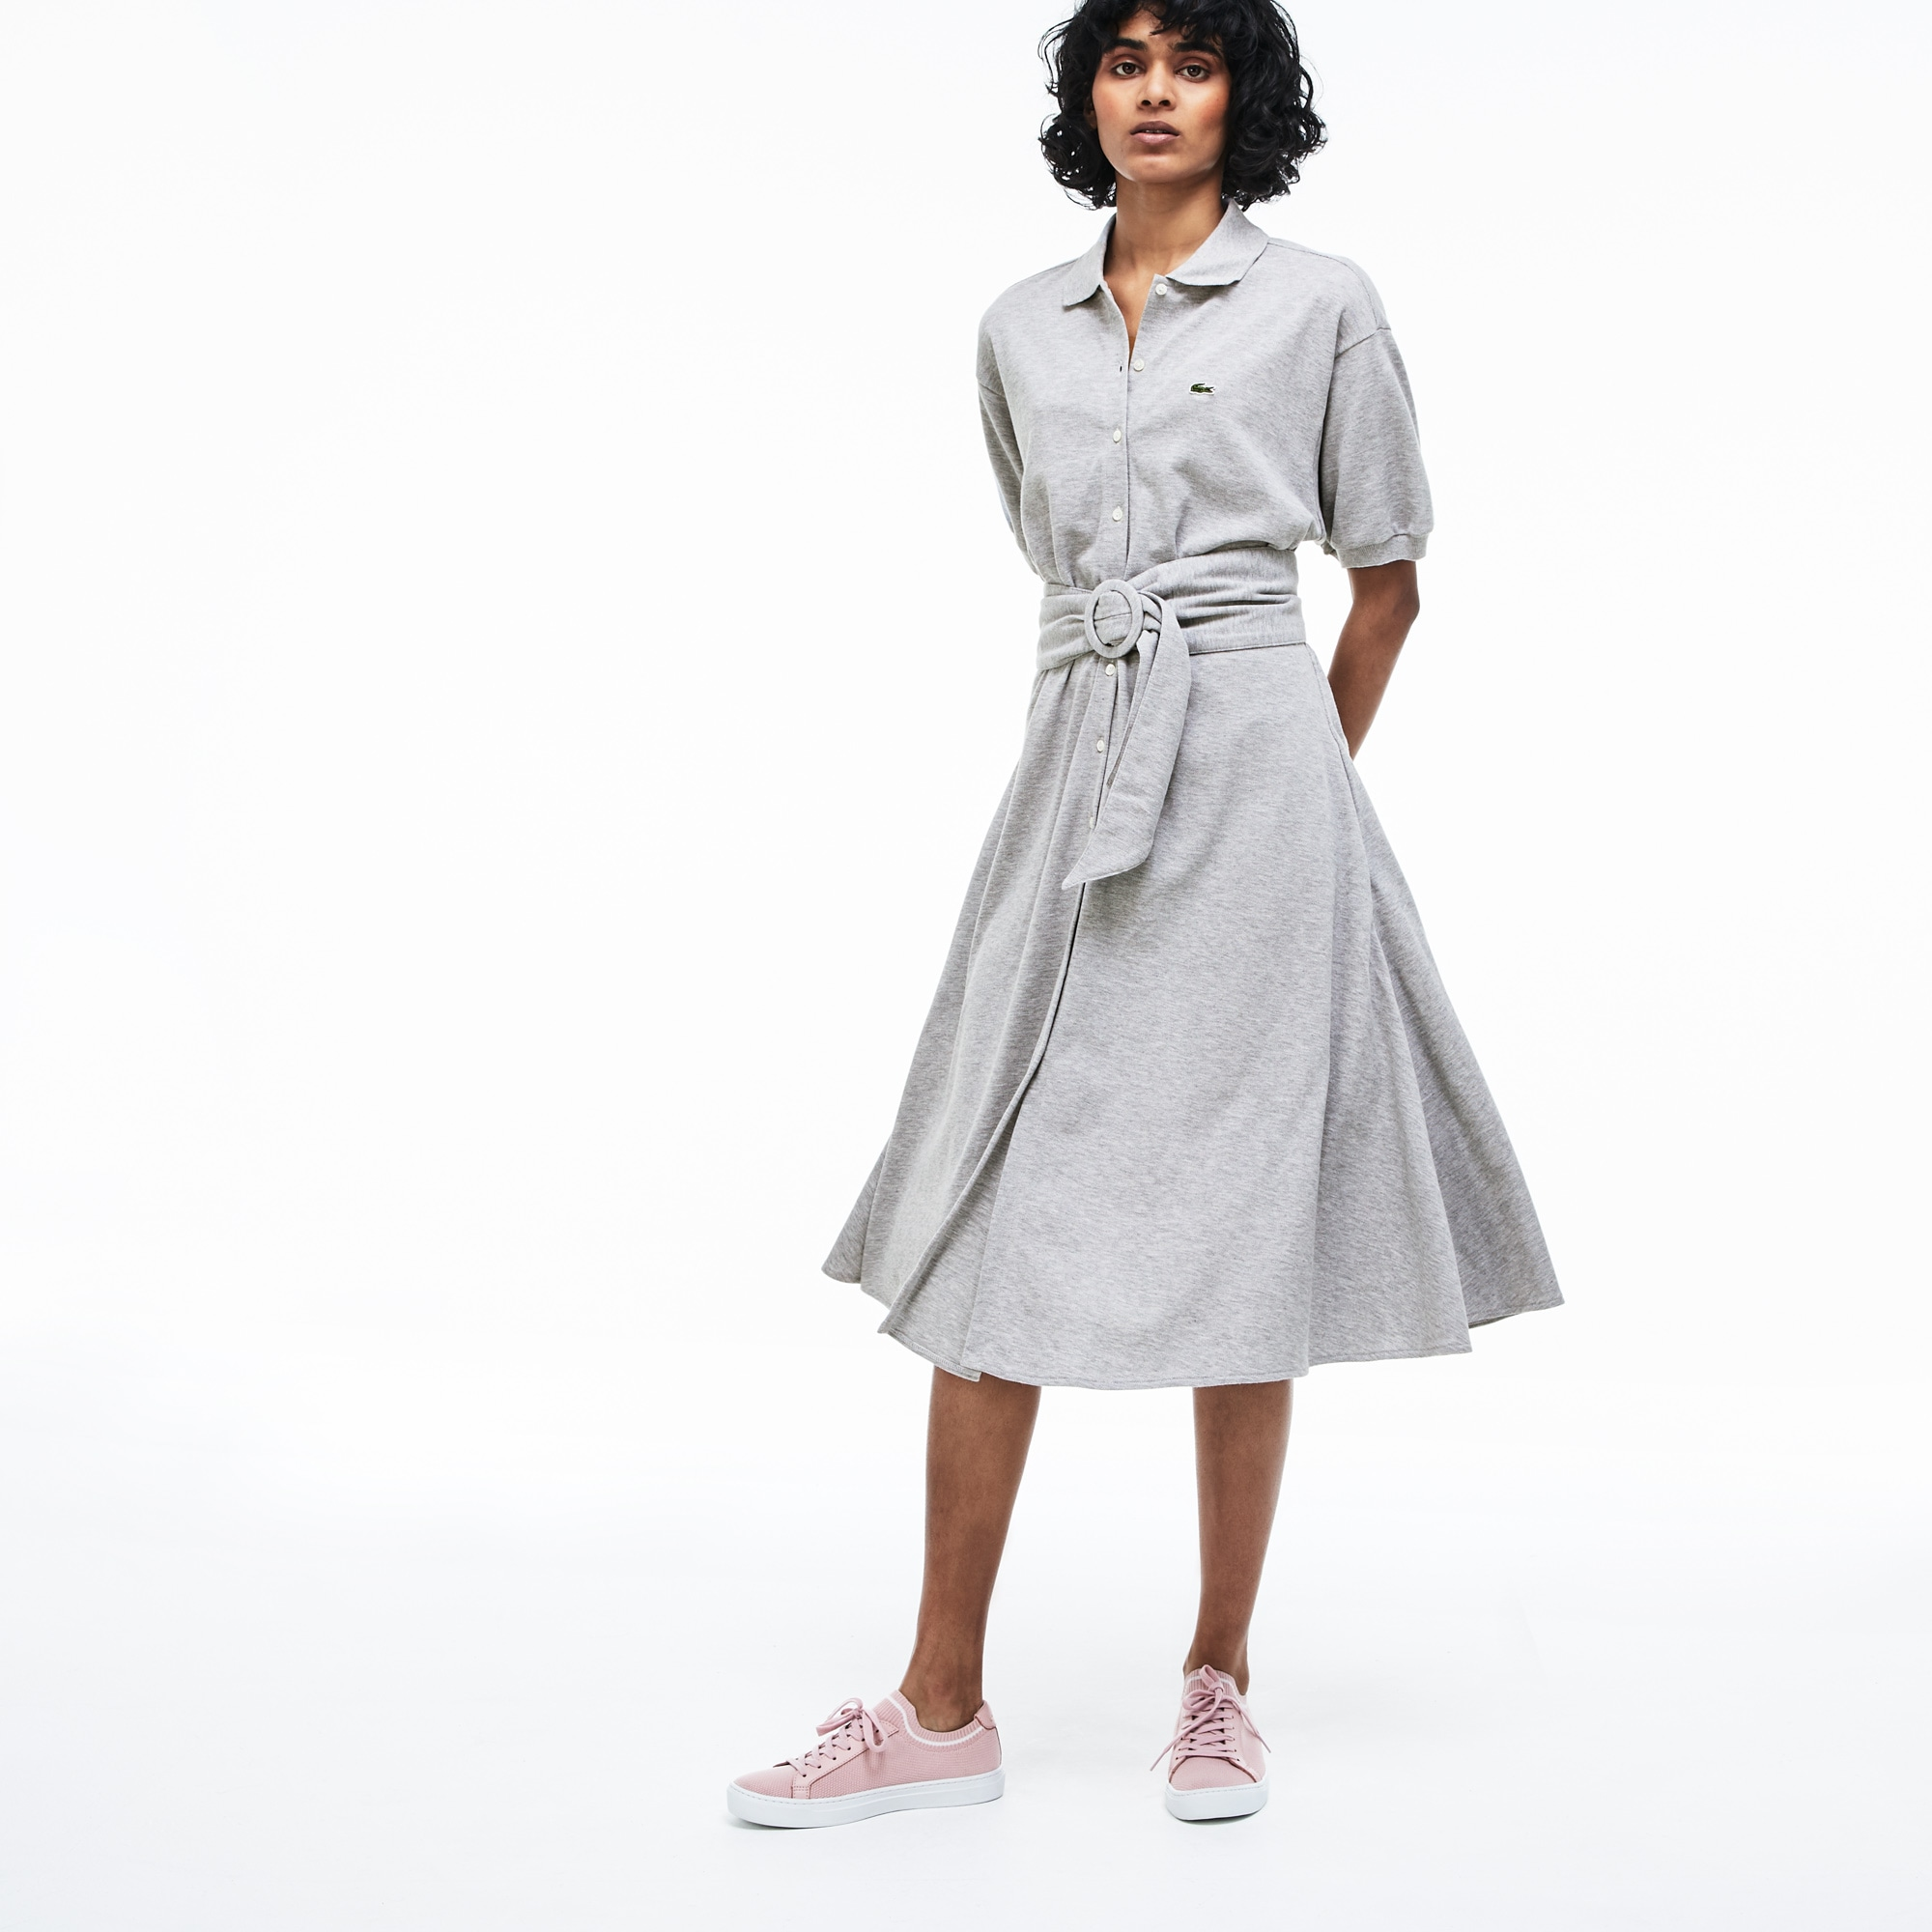 f729fa674cd5 Women s Buttoned   Belted Soft Cotton Polo Shirt Dress